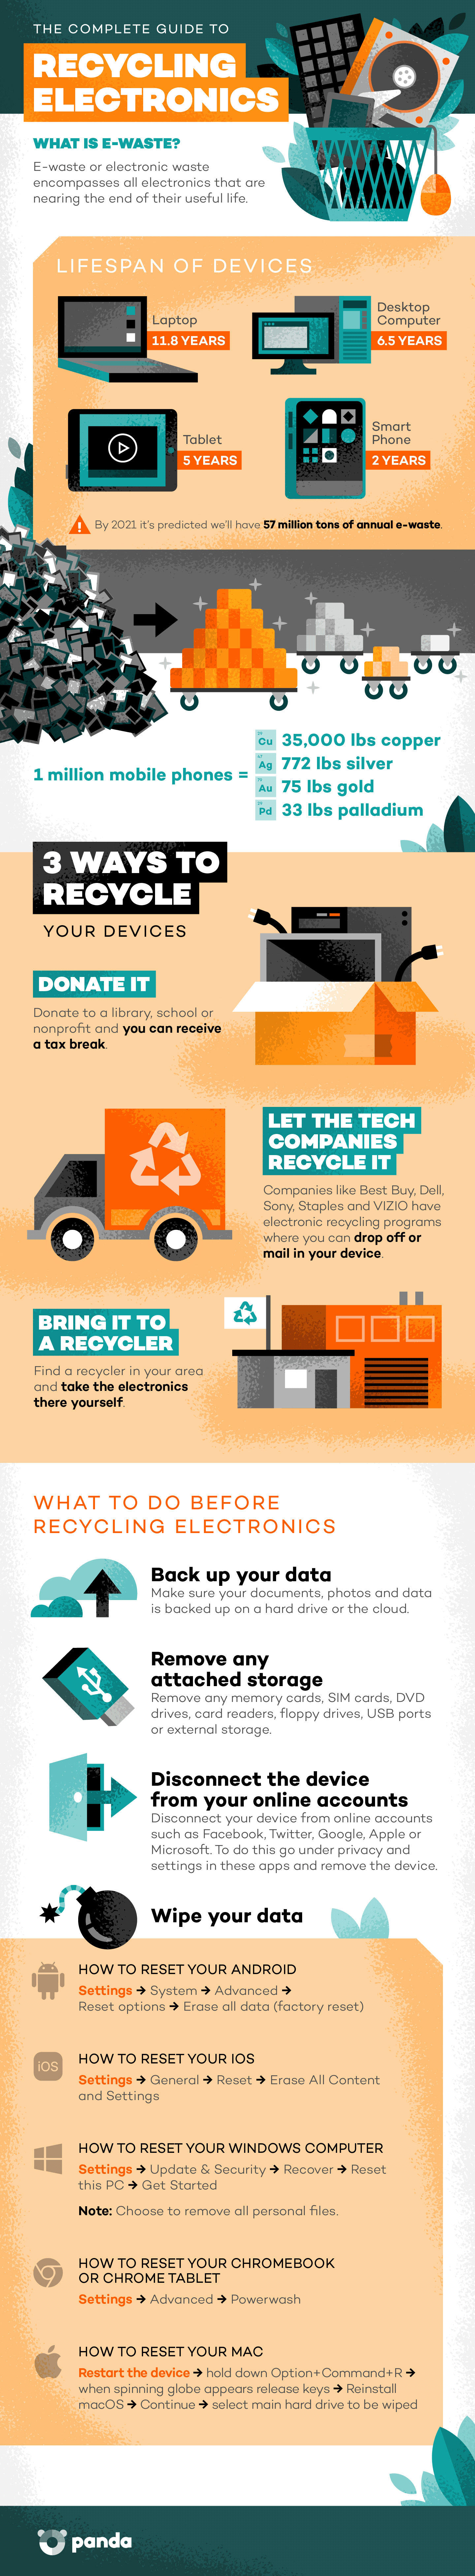 How to recycle electronics infographic